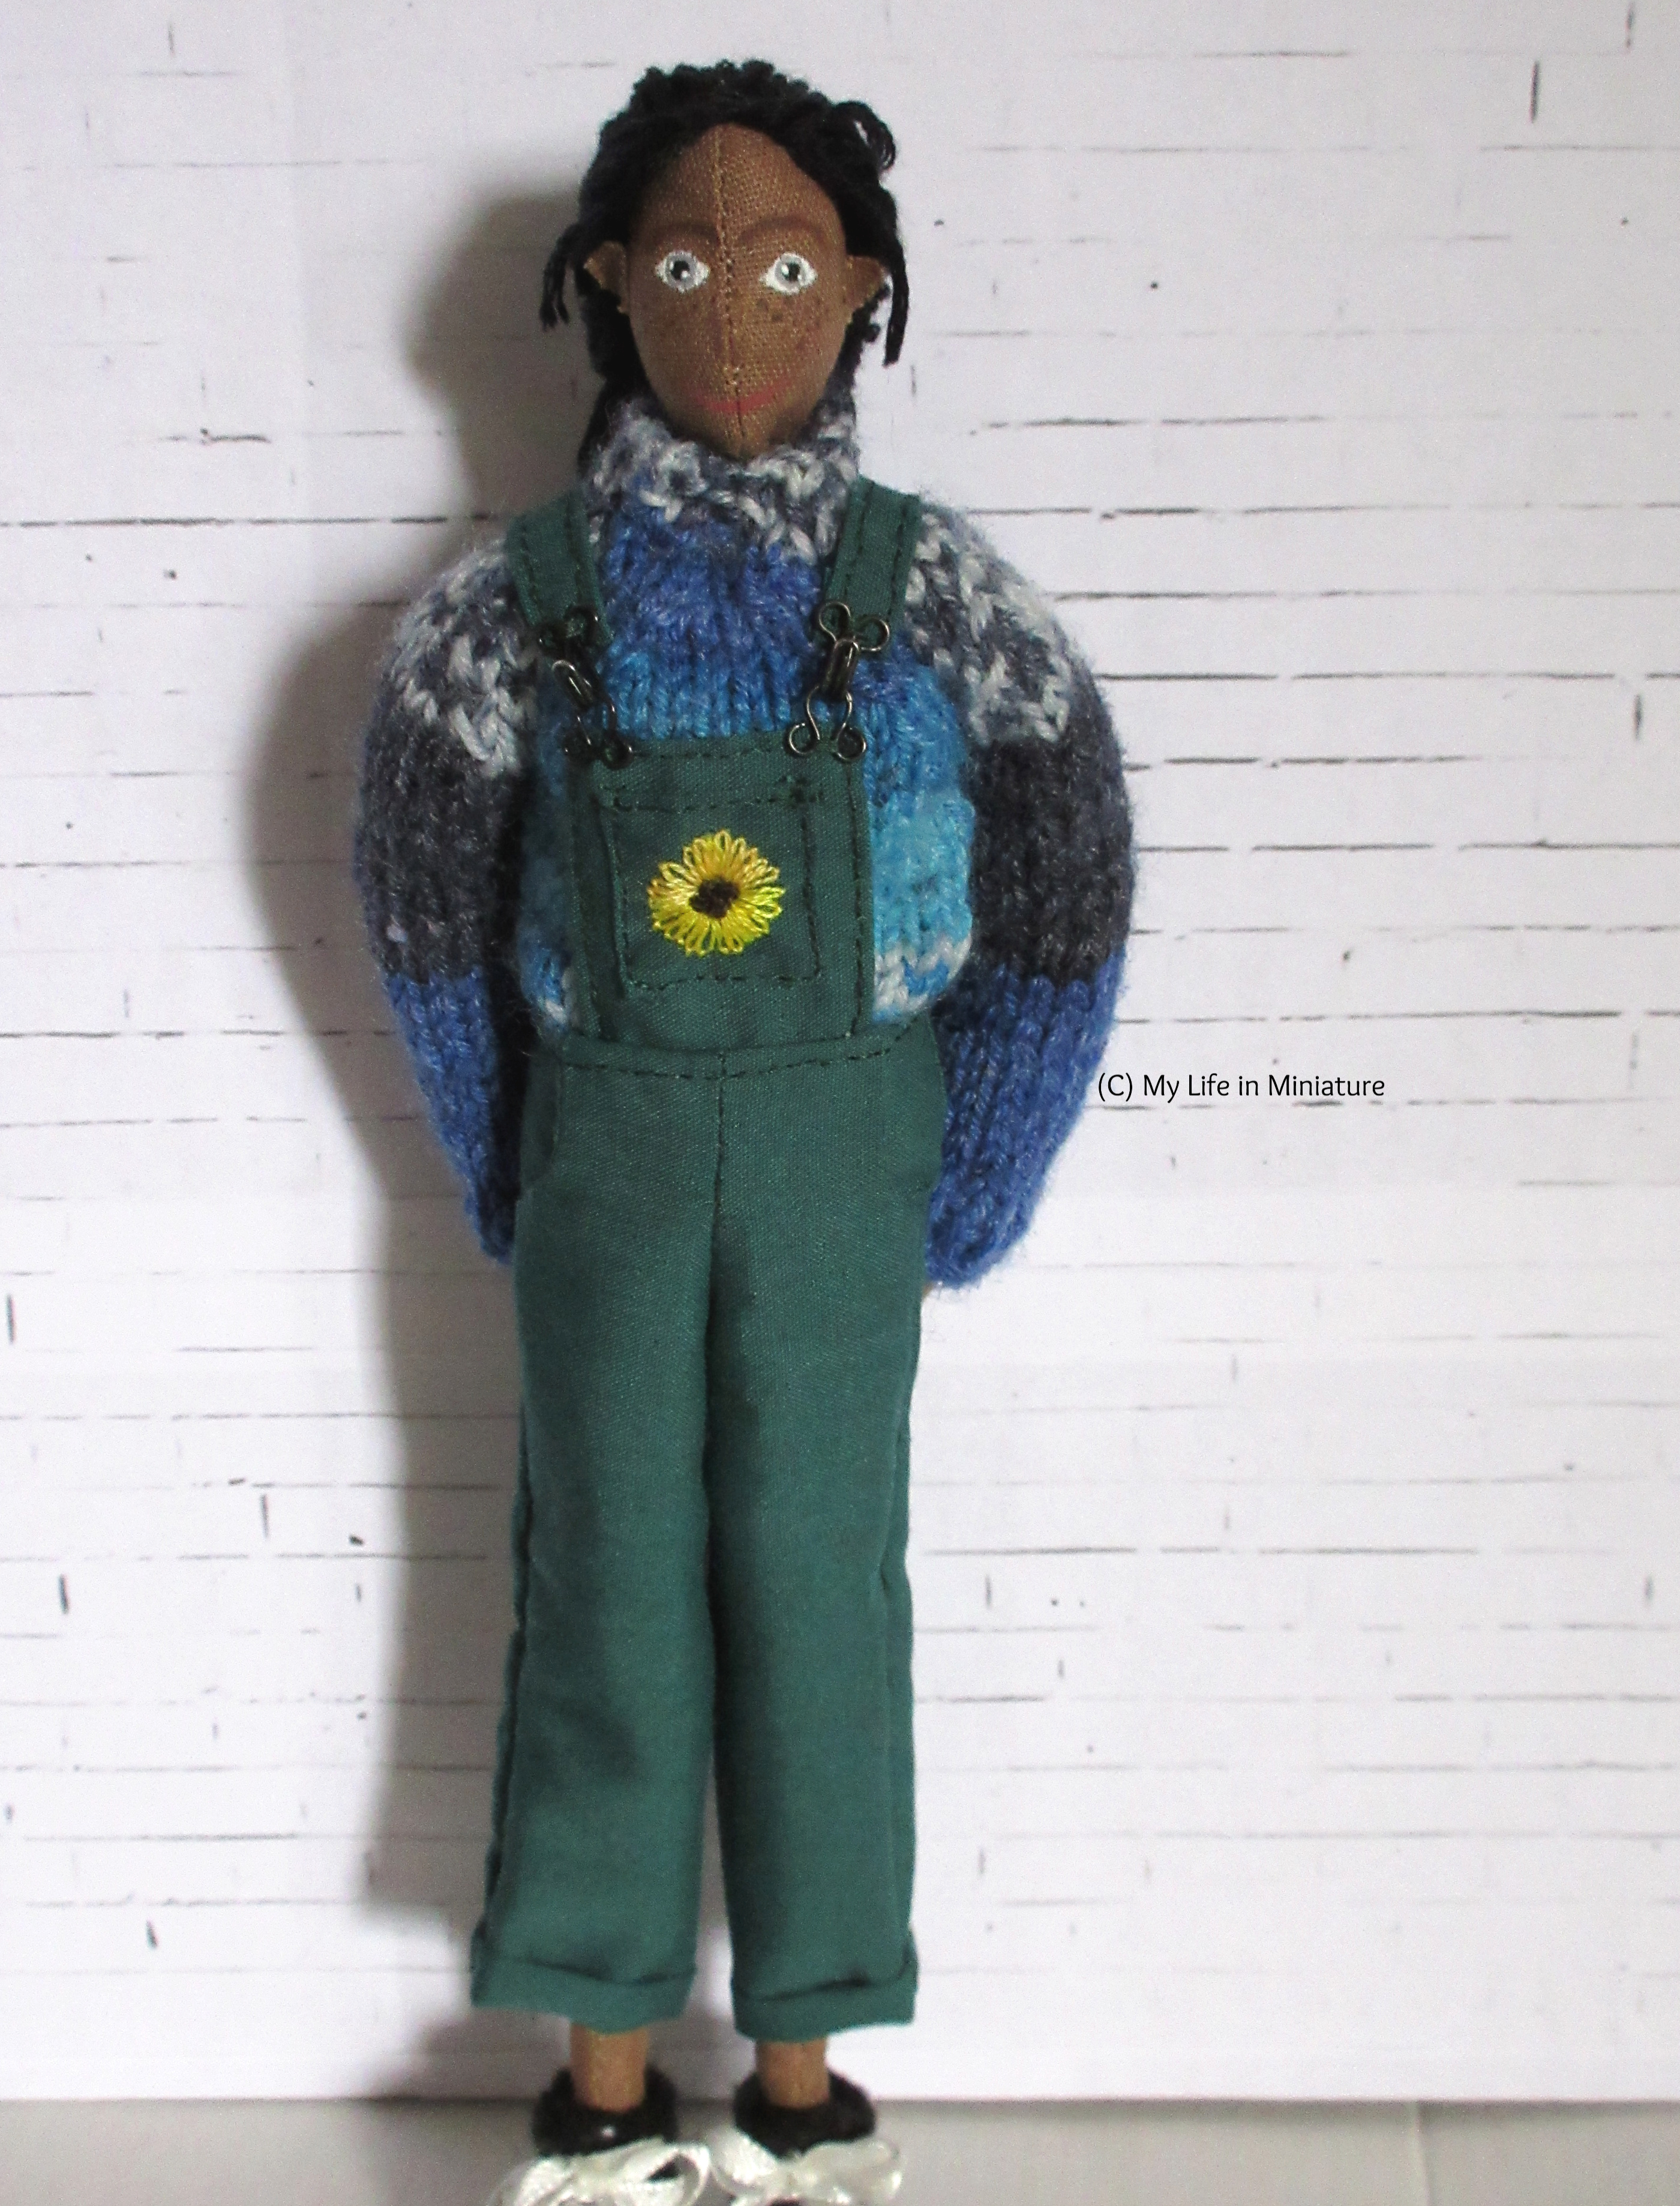 Petra stands in front of a white brick background, smiling at the camera with her hands behind her back. She wears a pair of long green dungarees that have a sunflower embroidered on the pocket, and her blue jumper.